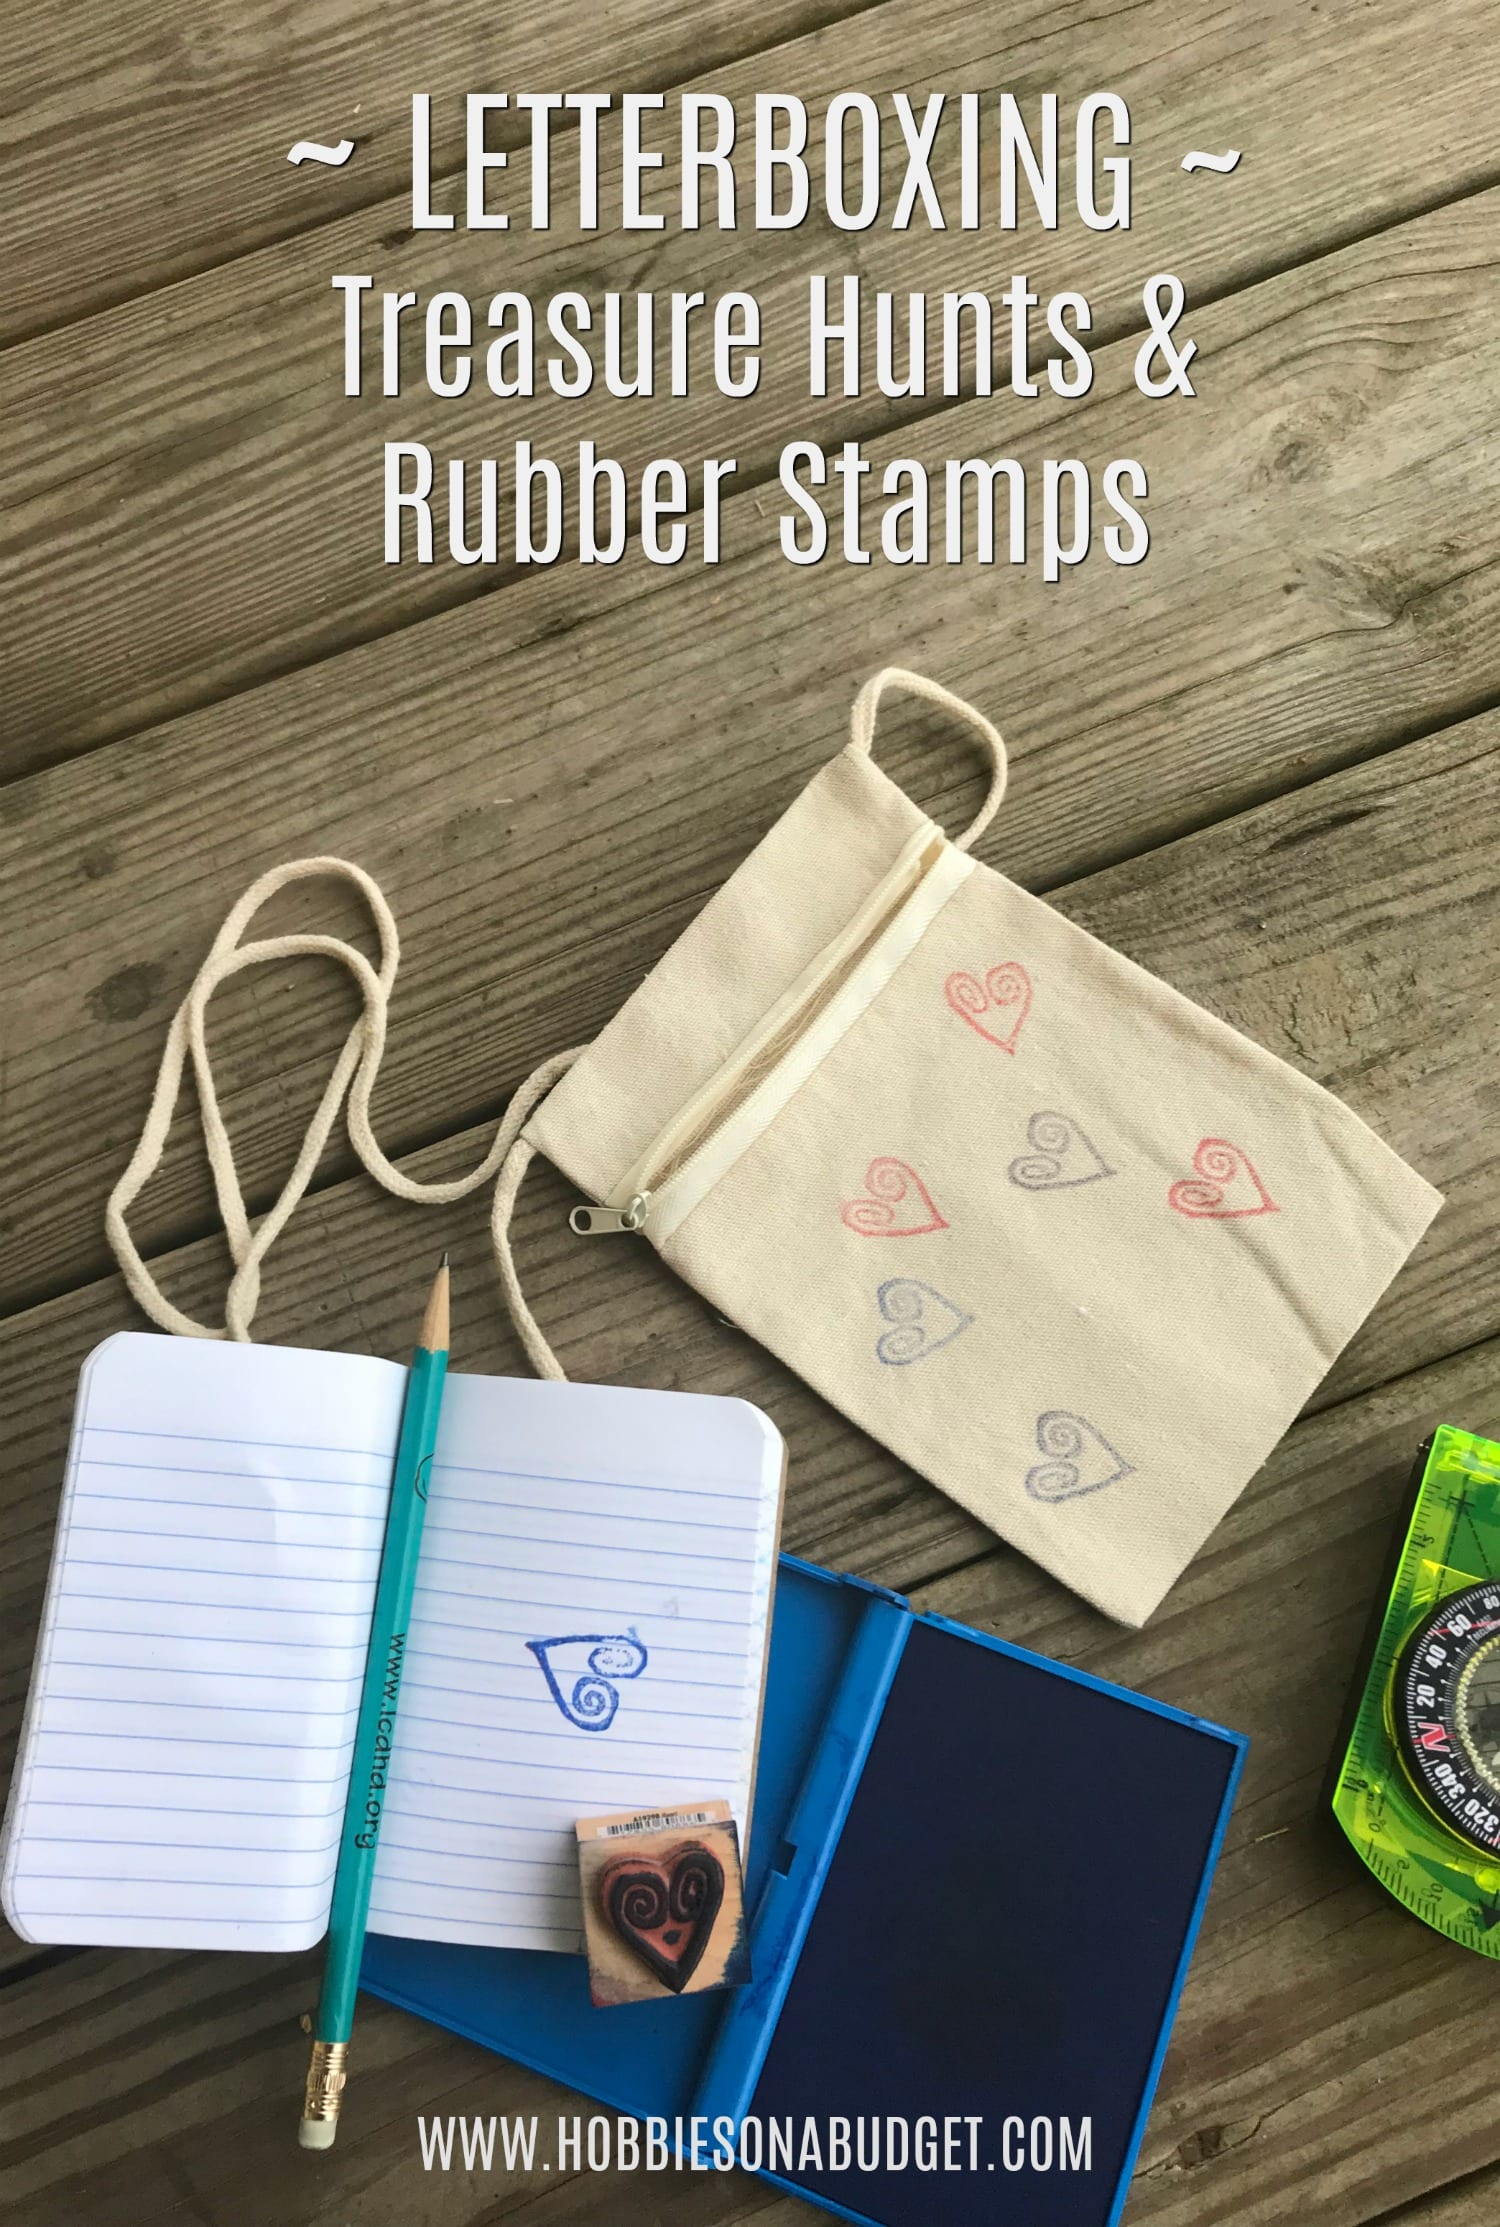 Letterboxing - Treasure Hunts & Rubber Stamps